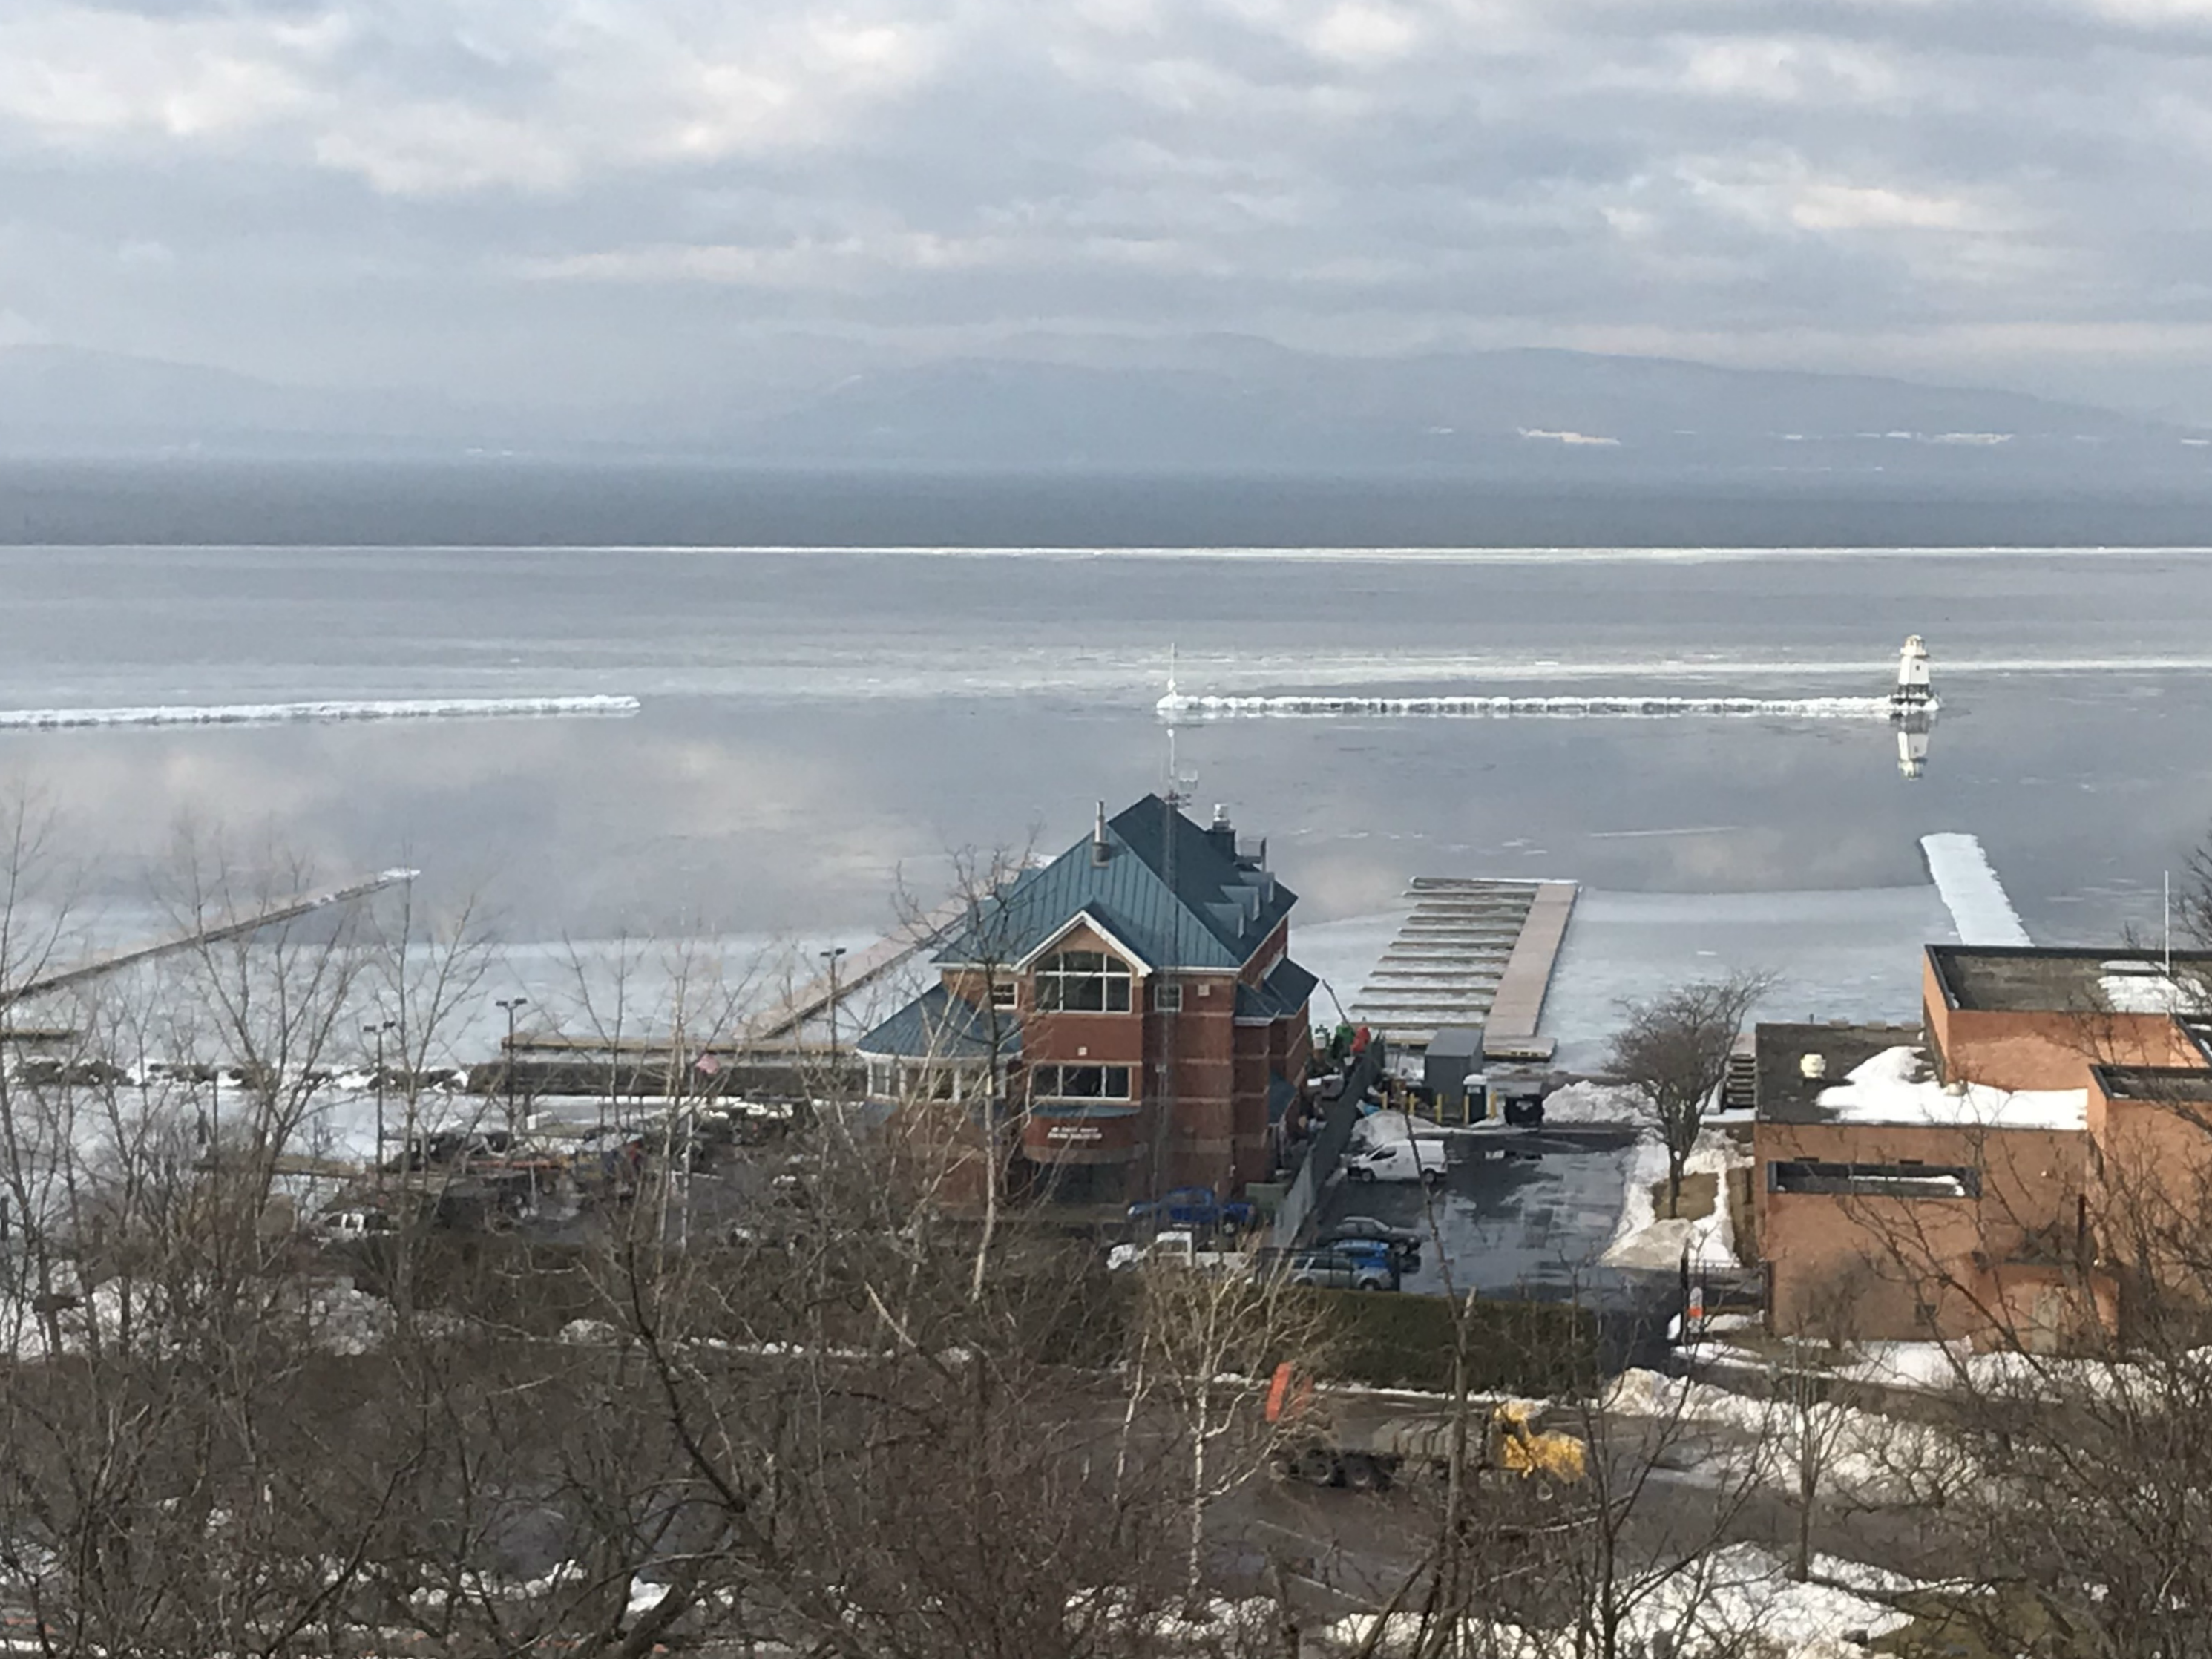 Portions of the new Burlington Harbor Marina lie offshore from the U.S. Coast Guard station on Tuesday, Feb. 5, 2019.